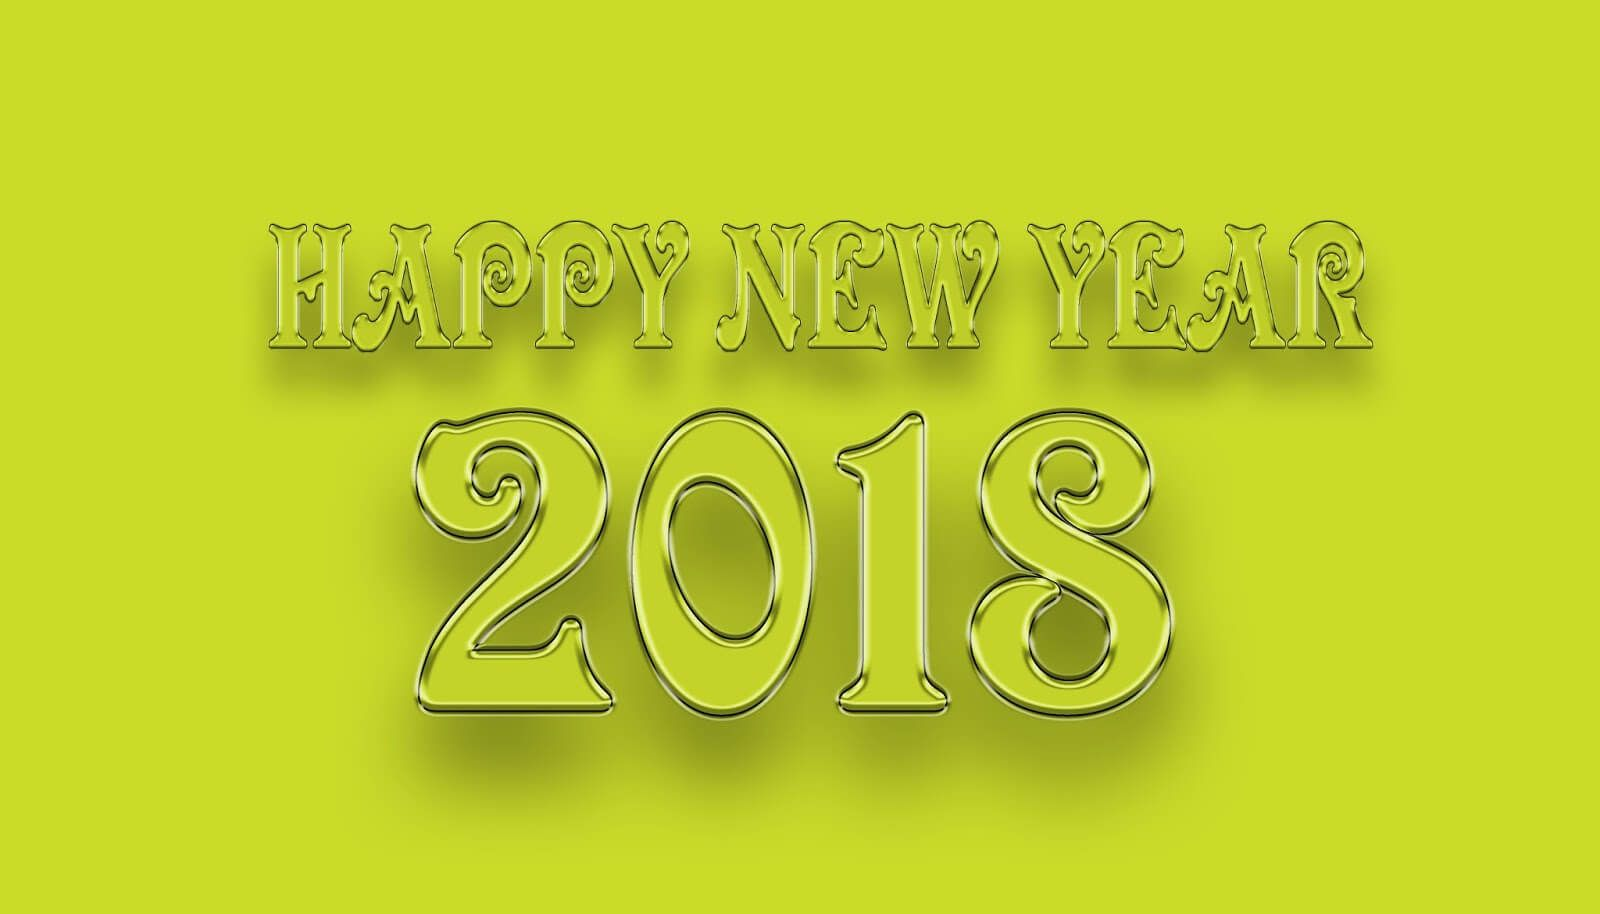 Advance Happy New Year 2018 Images Download Wallpapers